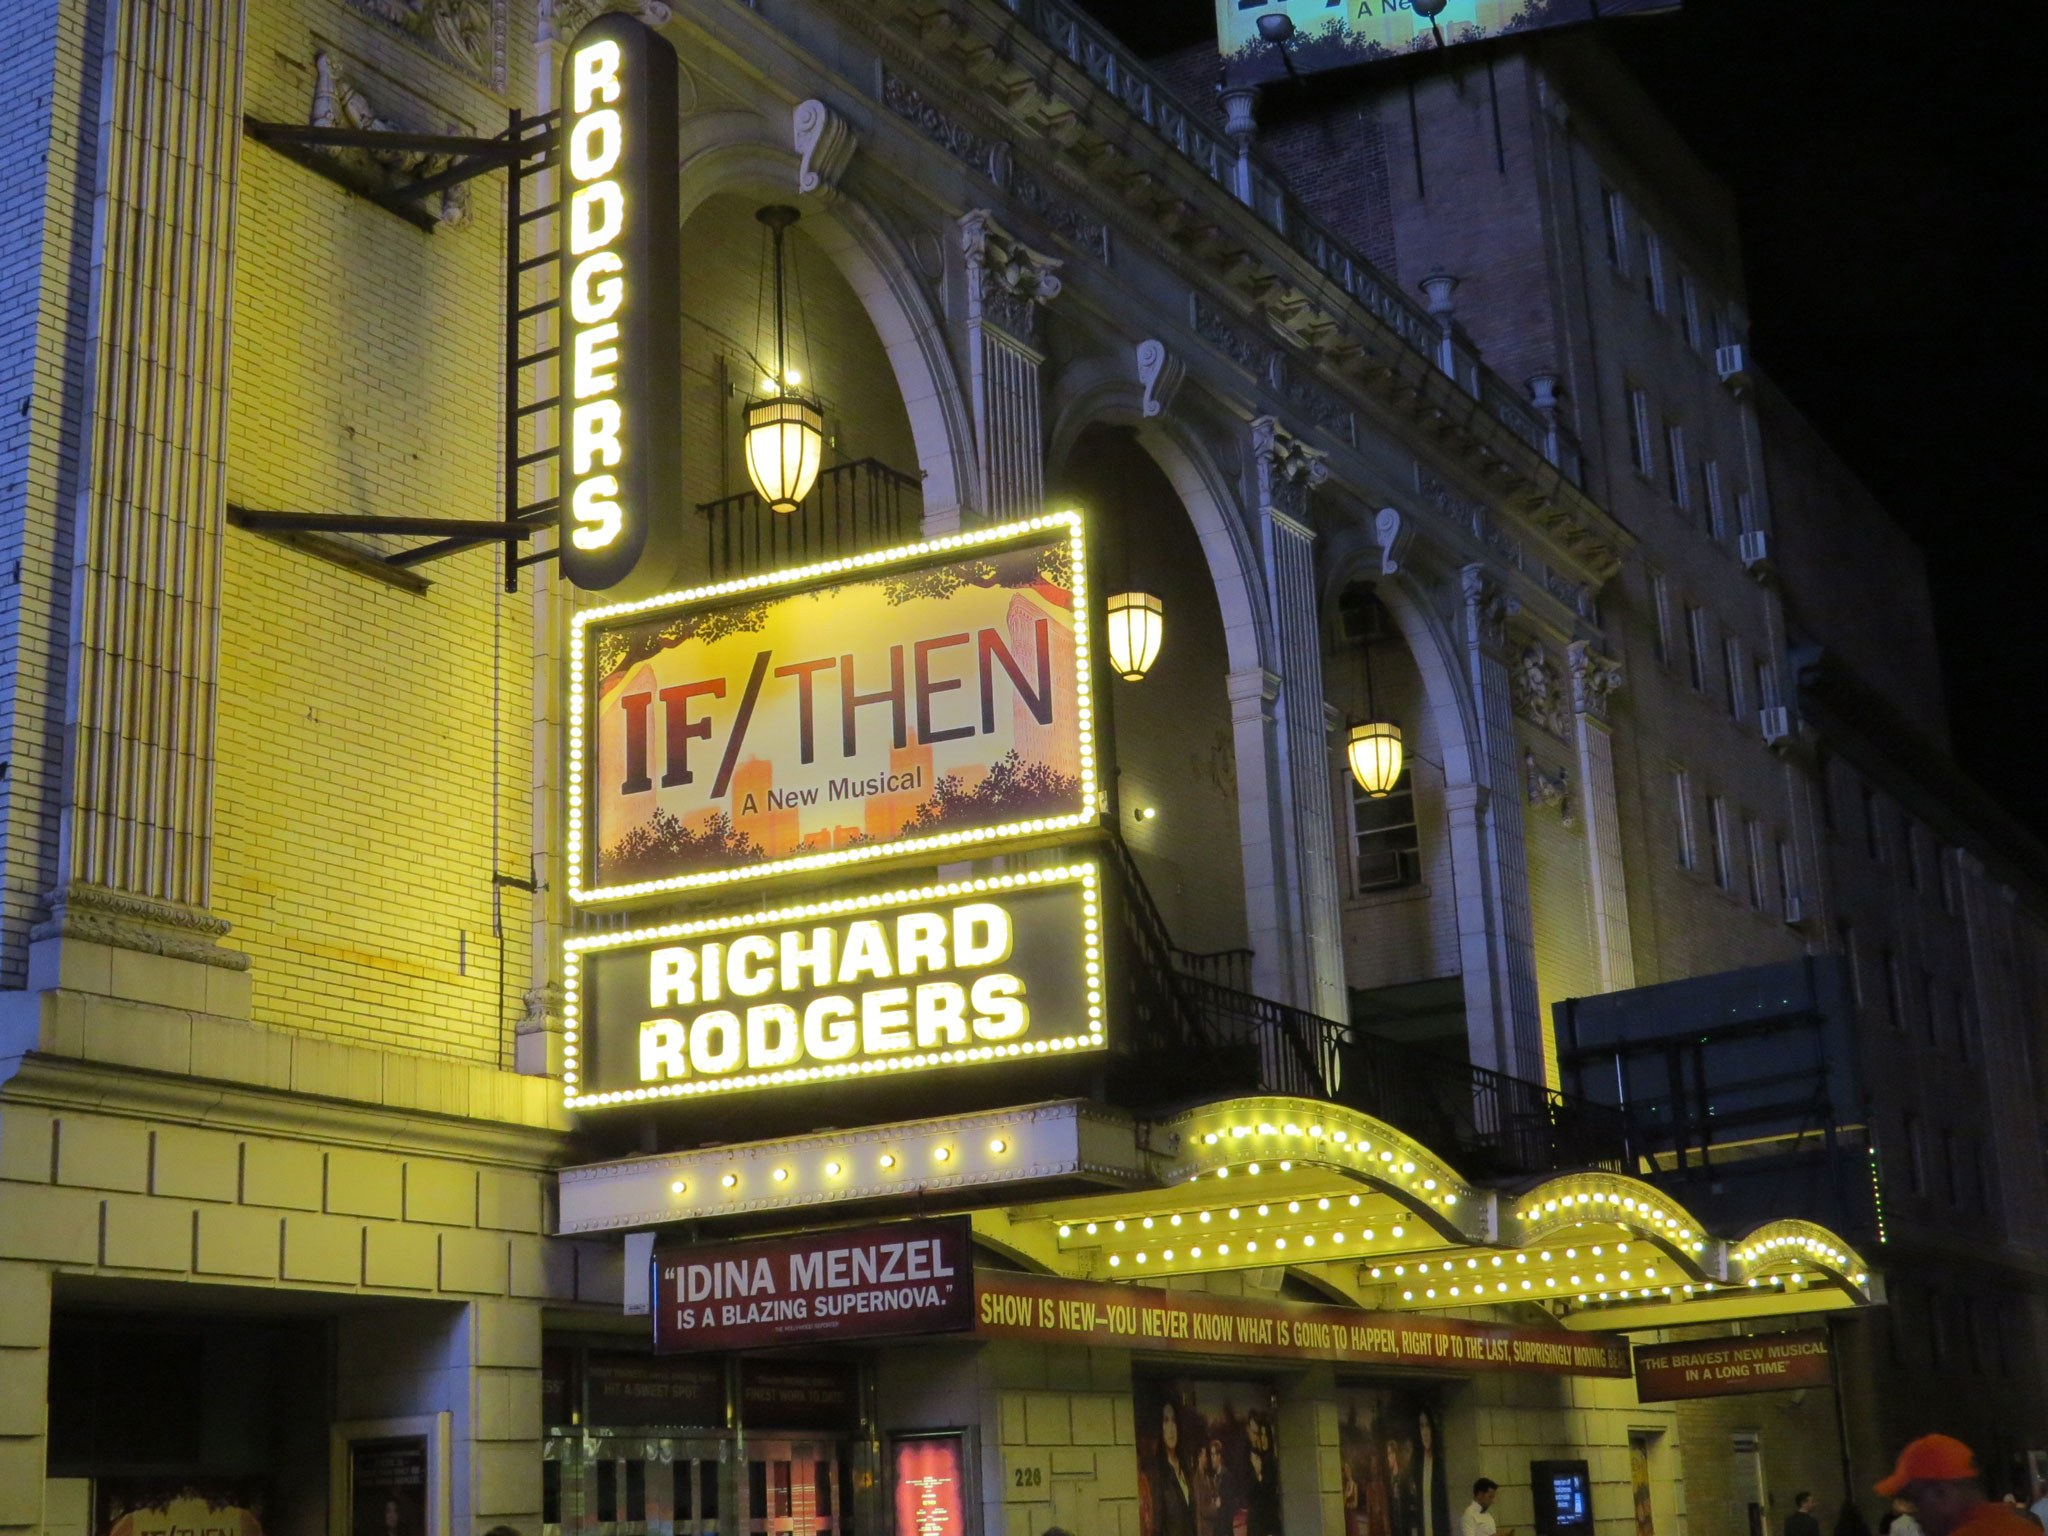 If/Then Marquee